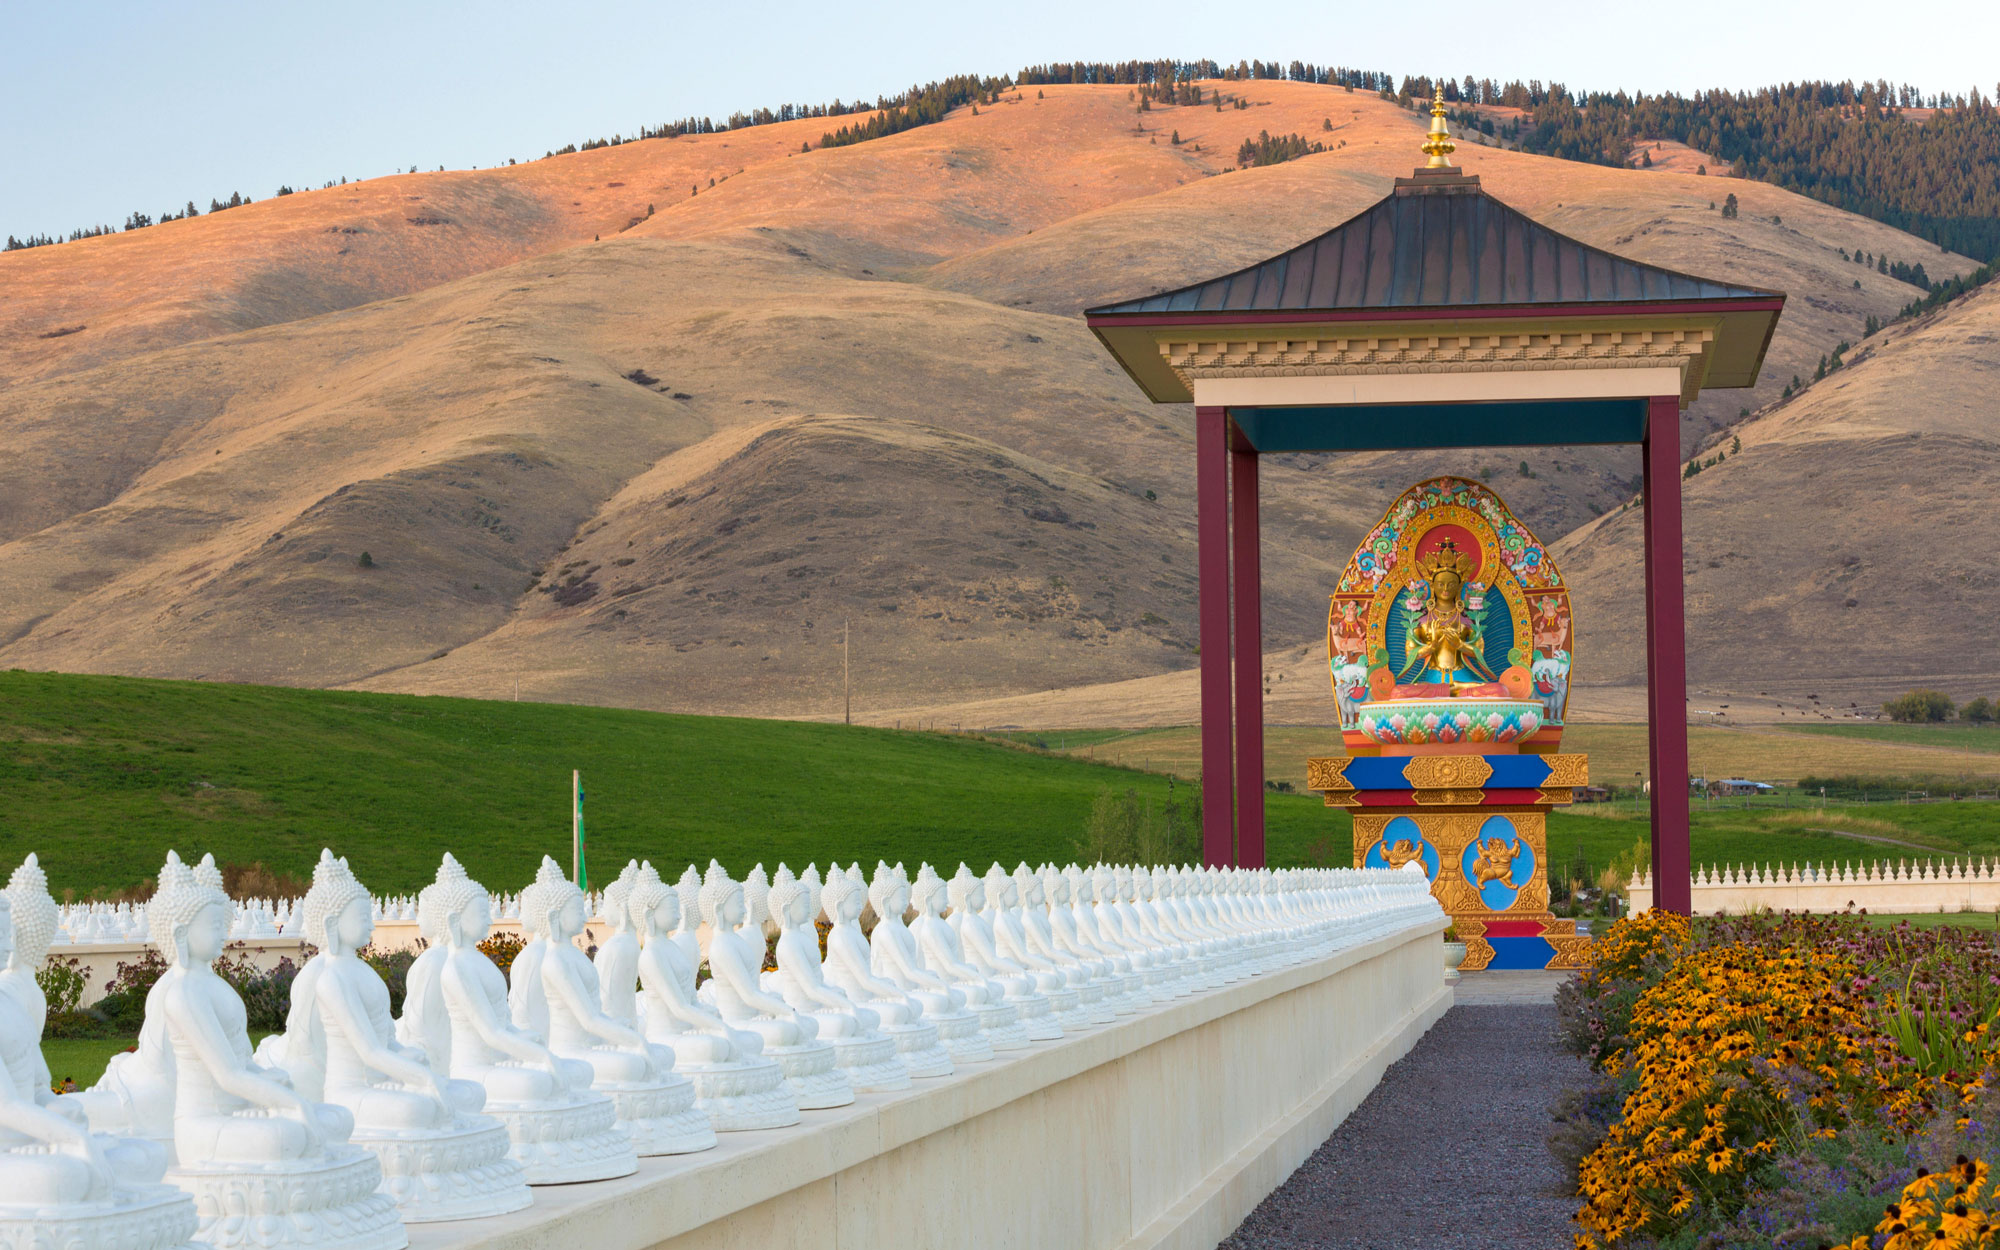 Weirdest Roadside Attractions: Montana: Garden of One Thousand Buddhas